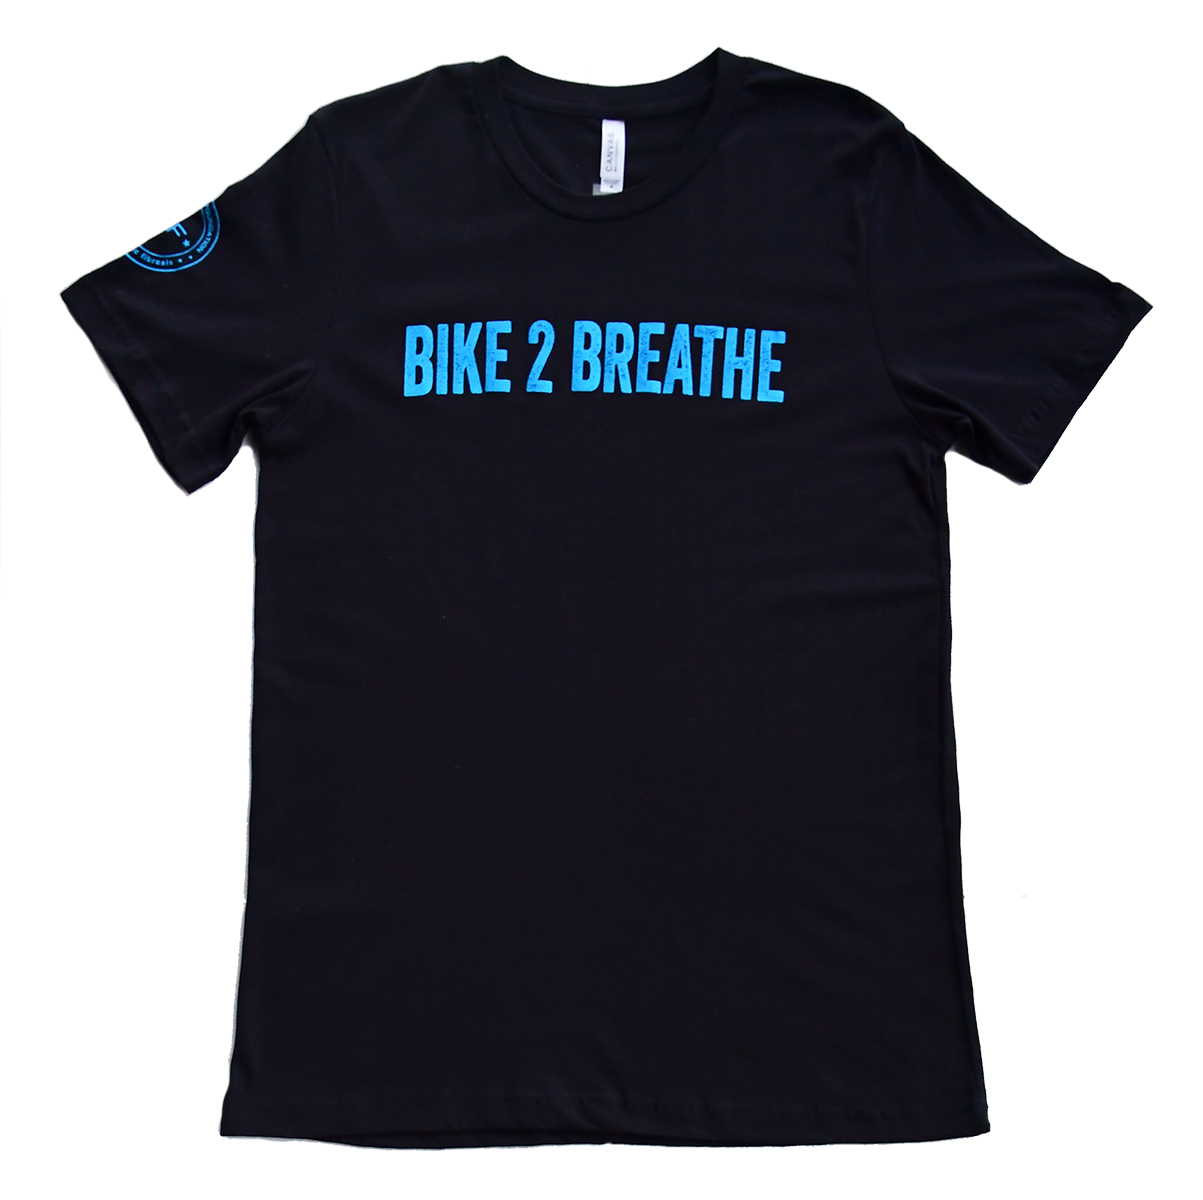 Bike 2 Breathe 2020 Shirt